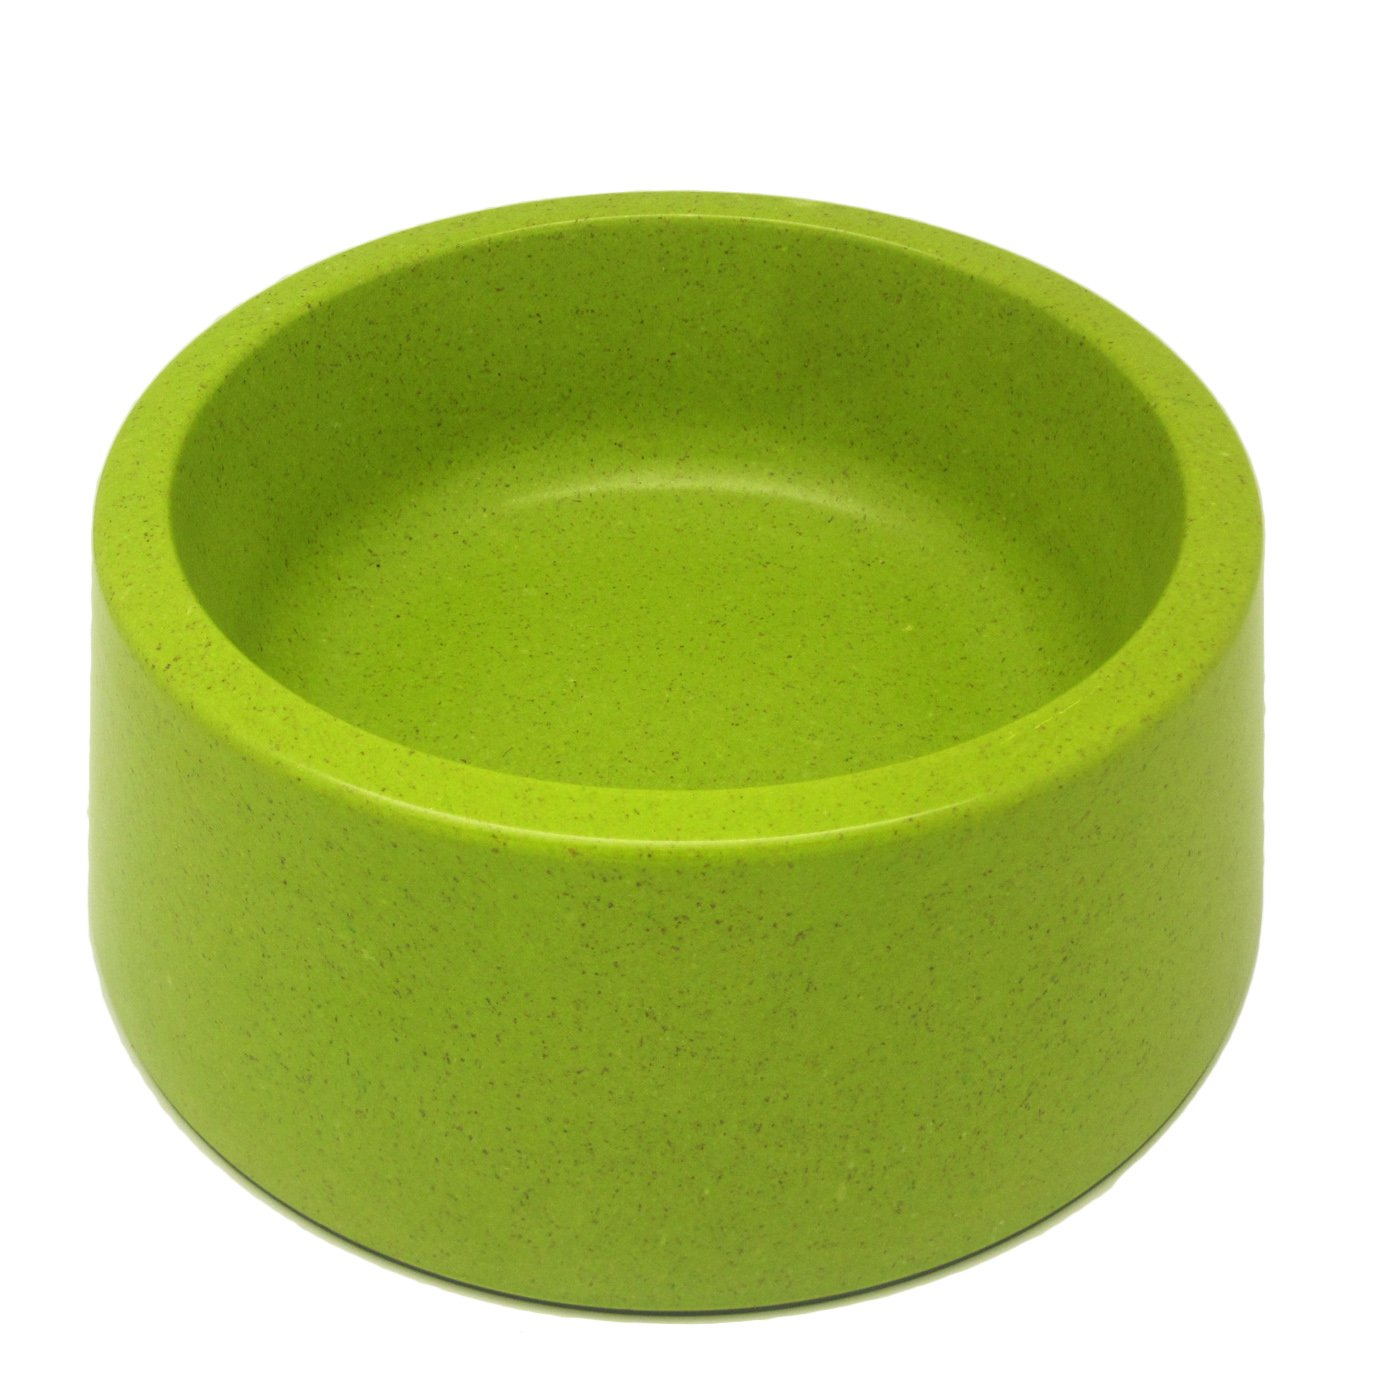 Alfie Pet by Petoga Couture - Kima Bamboo Fiber Eco-Friendly Pet Round Bowl (for Dogs & Cats) - Color: Green, Size: XL